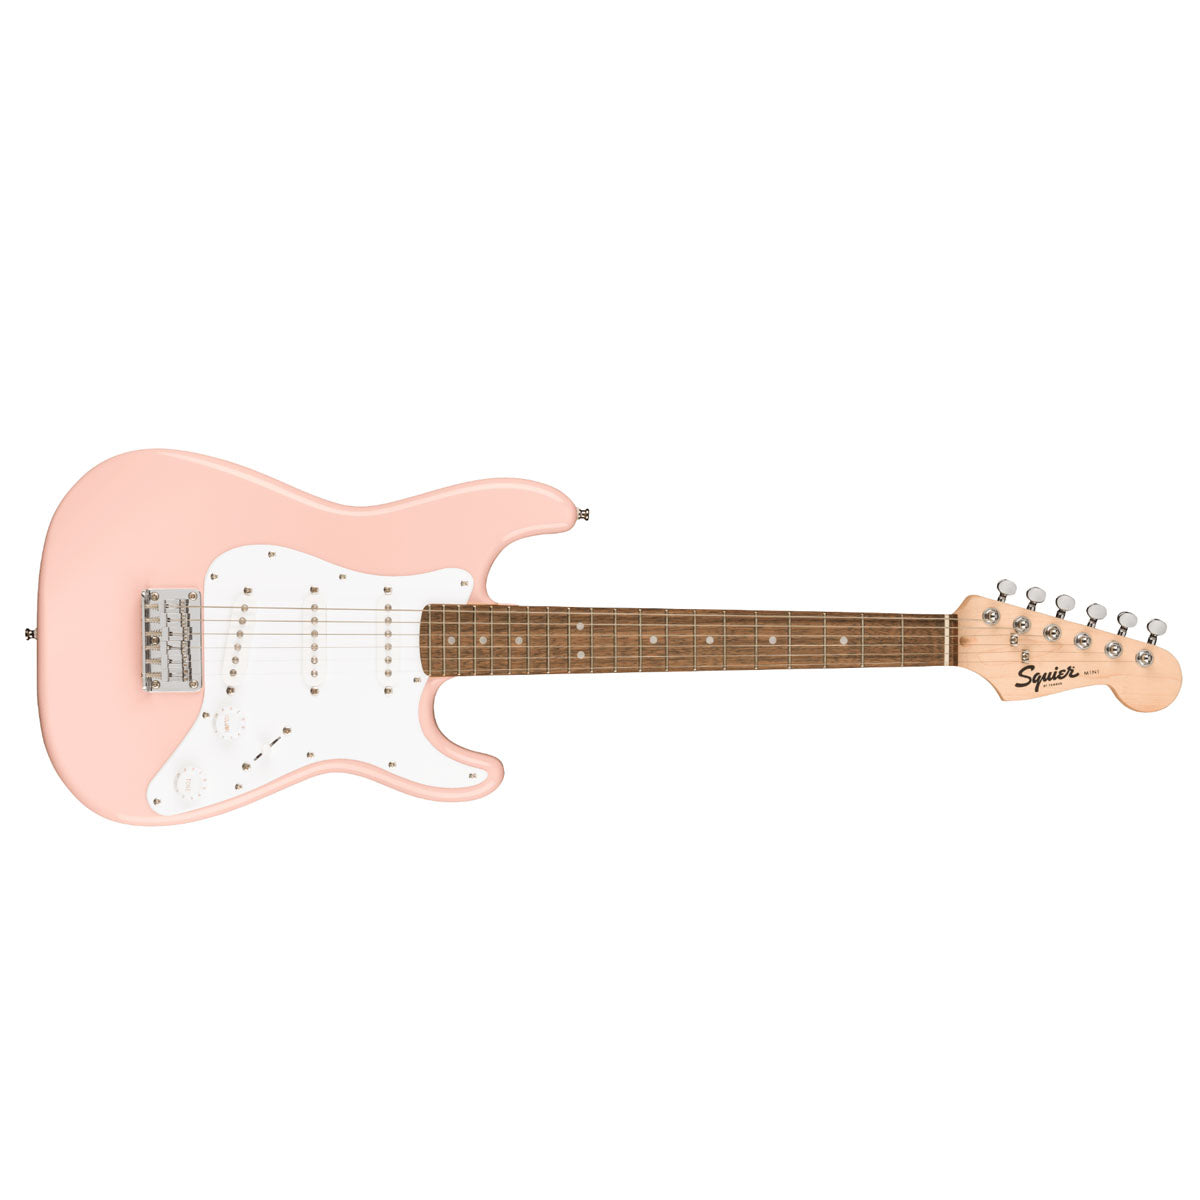 Fender Squier Mini Stratocaster Electric Guitar 3/4 Size Shell Pink - 0370121556